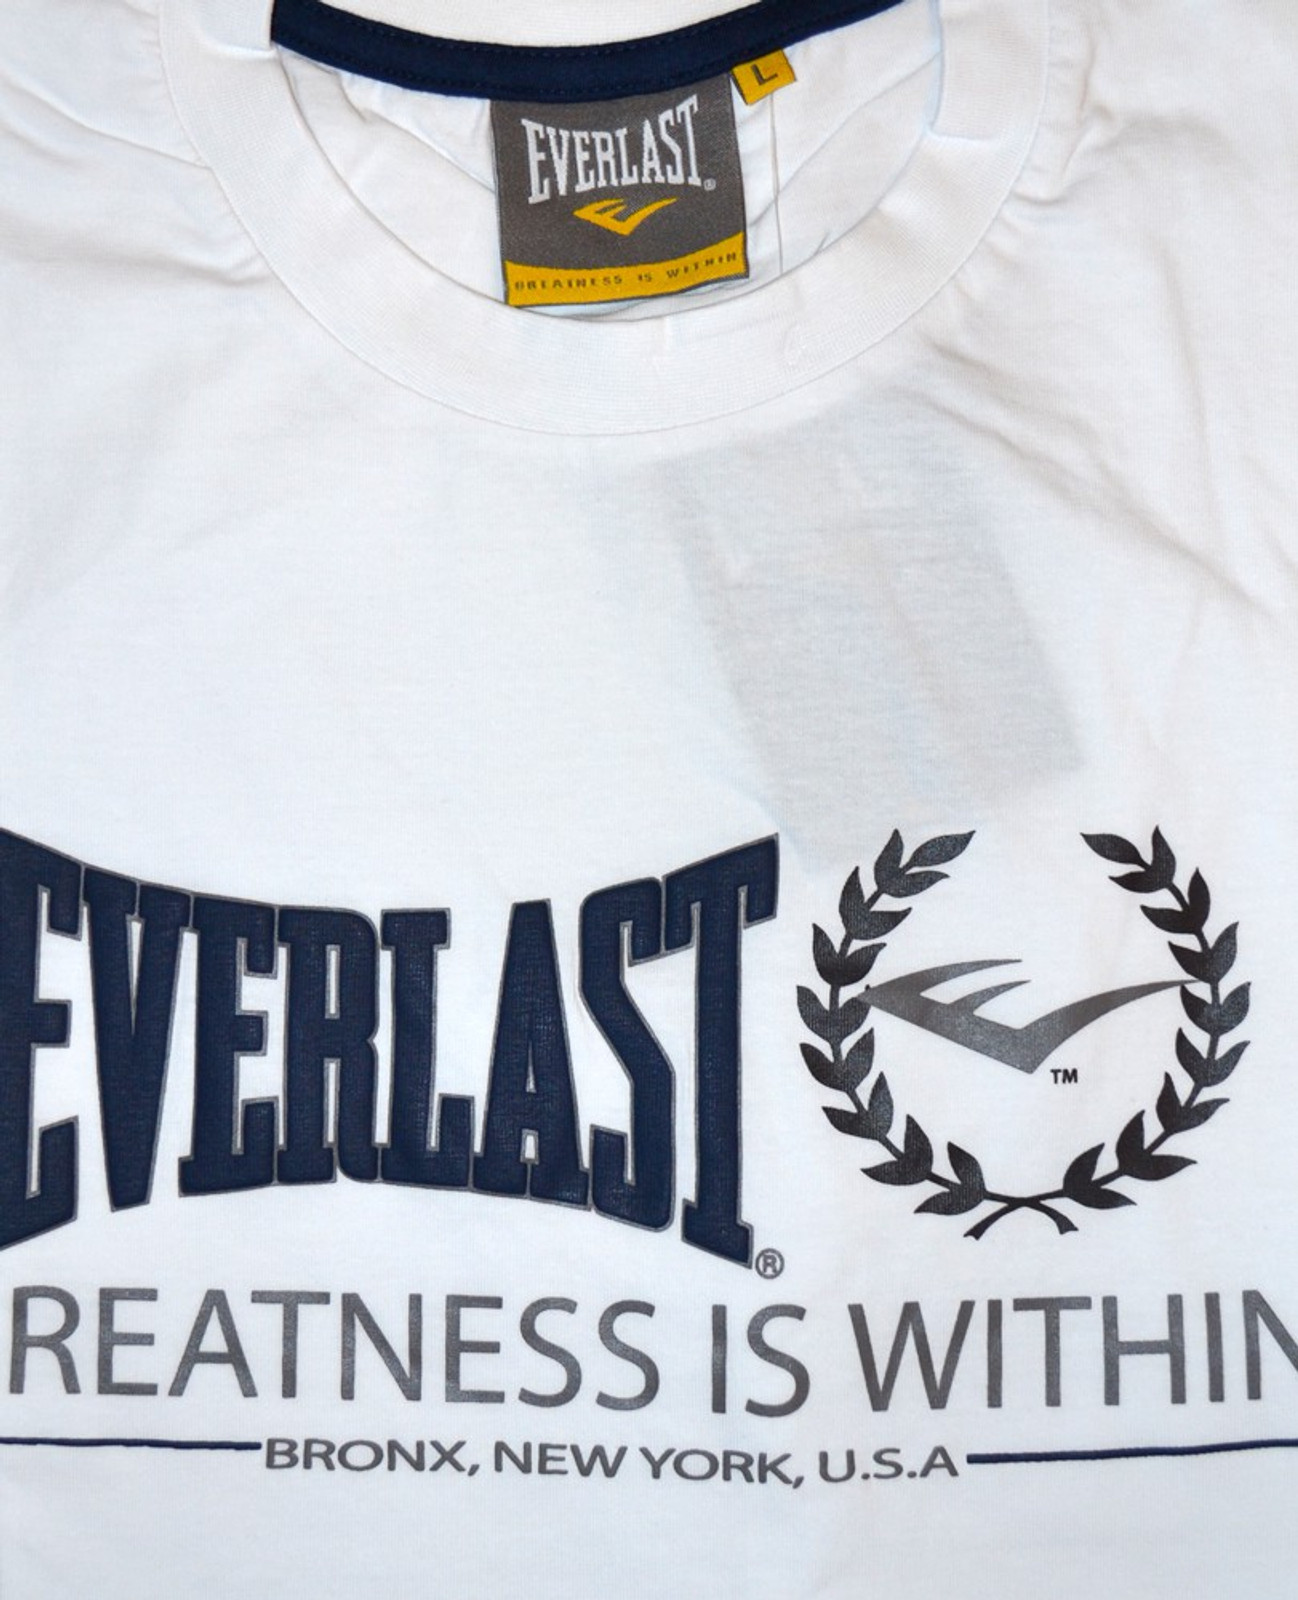 Everlast T-Shirt Greatness is Within